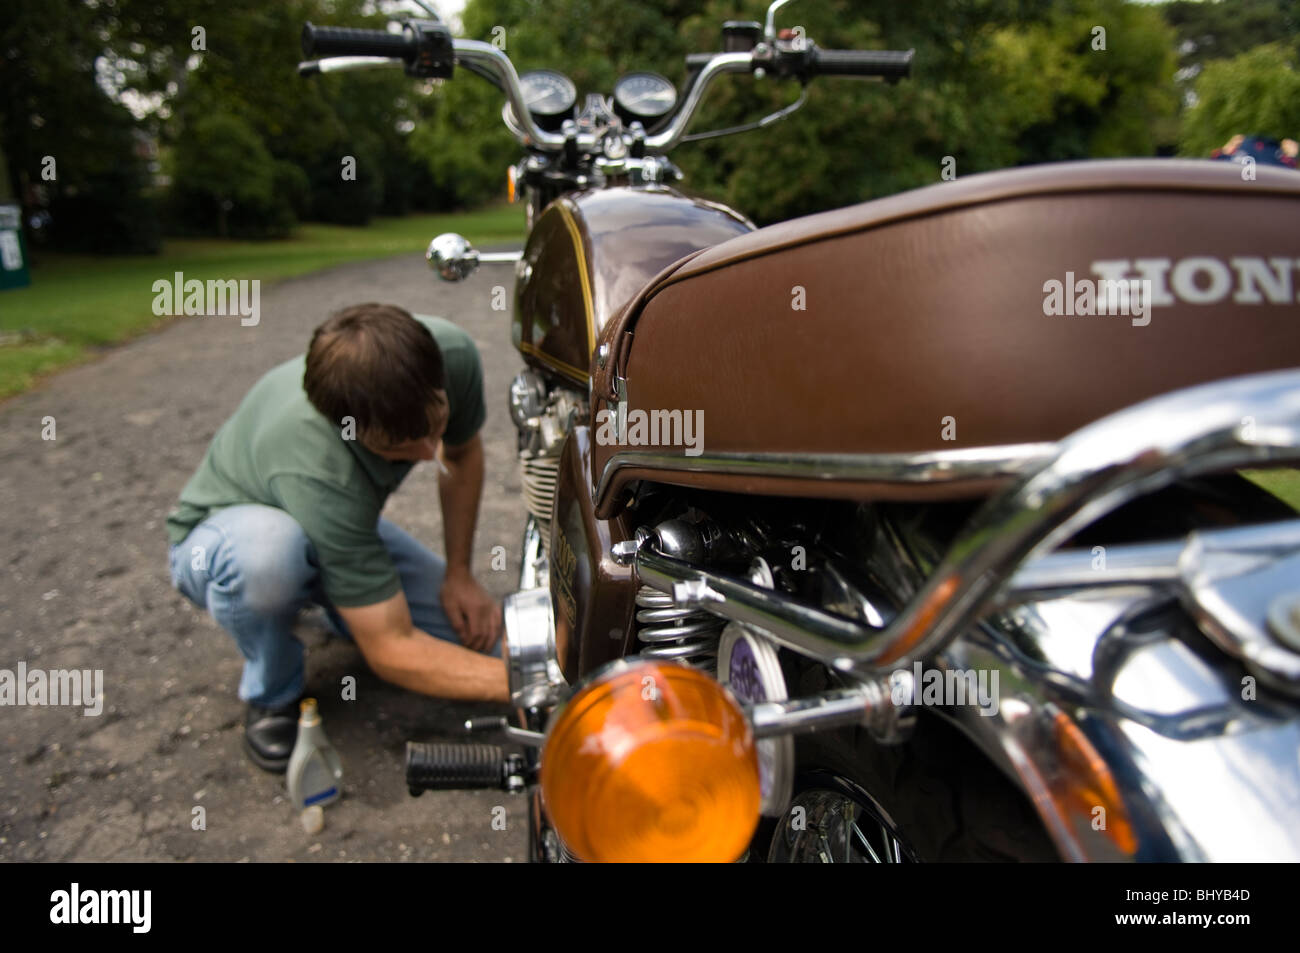 Honda Speedometer Stock Photos Images Alamy 1970 Silver Wing Motorcycles 1970s Cb500t Motorcycle Showing Owner Polishing Bike Image